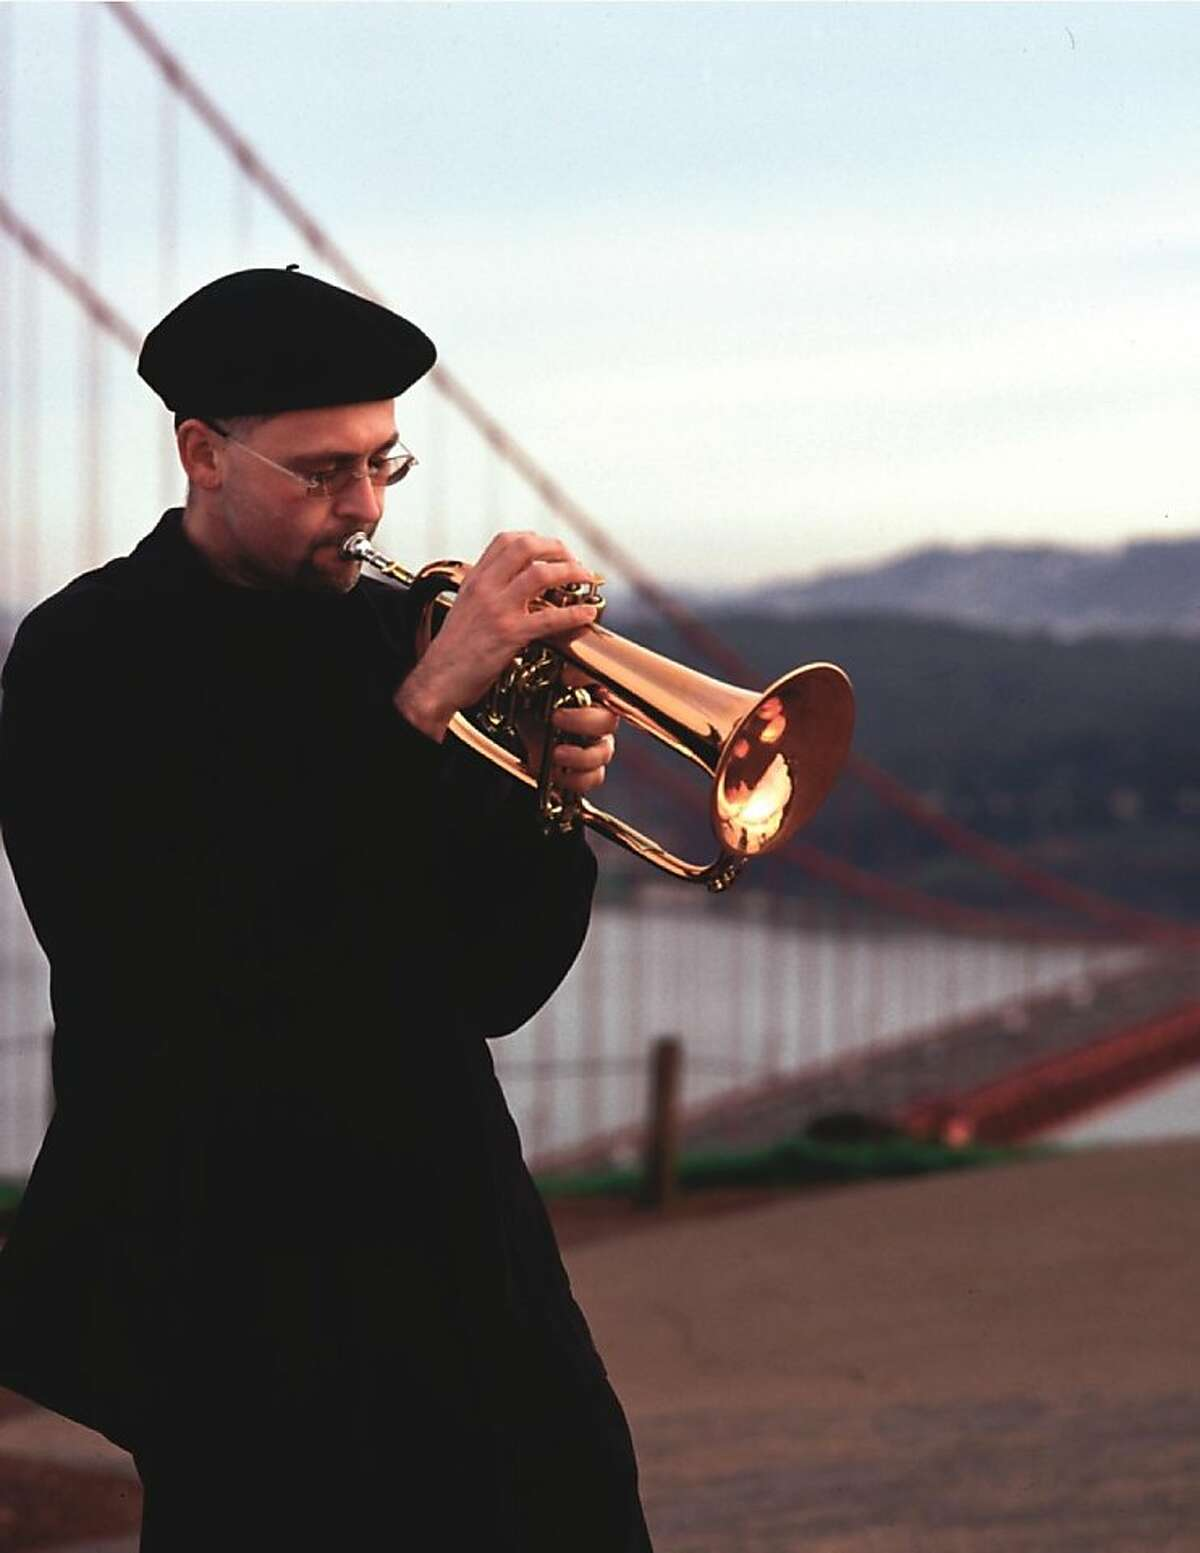 Flugelhorn master Dmitri Matheny landed in San Francisco, while many of his Berklee College of Music classmates headed to New York City. Matheny's never looked back.